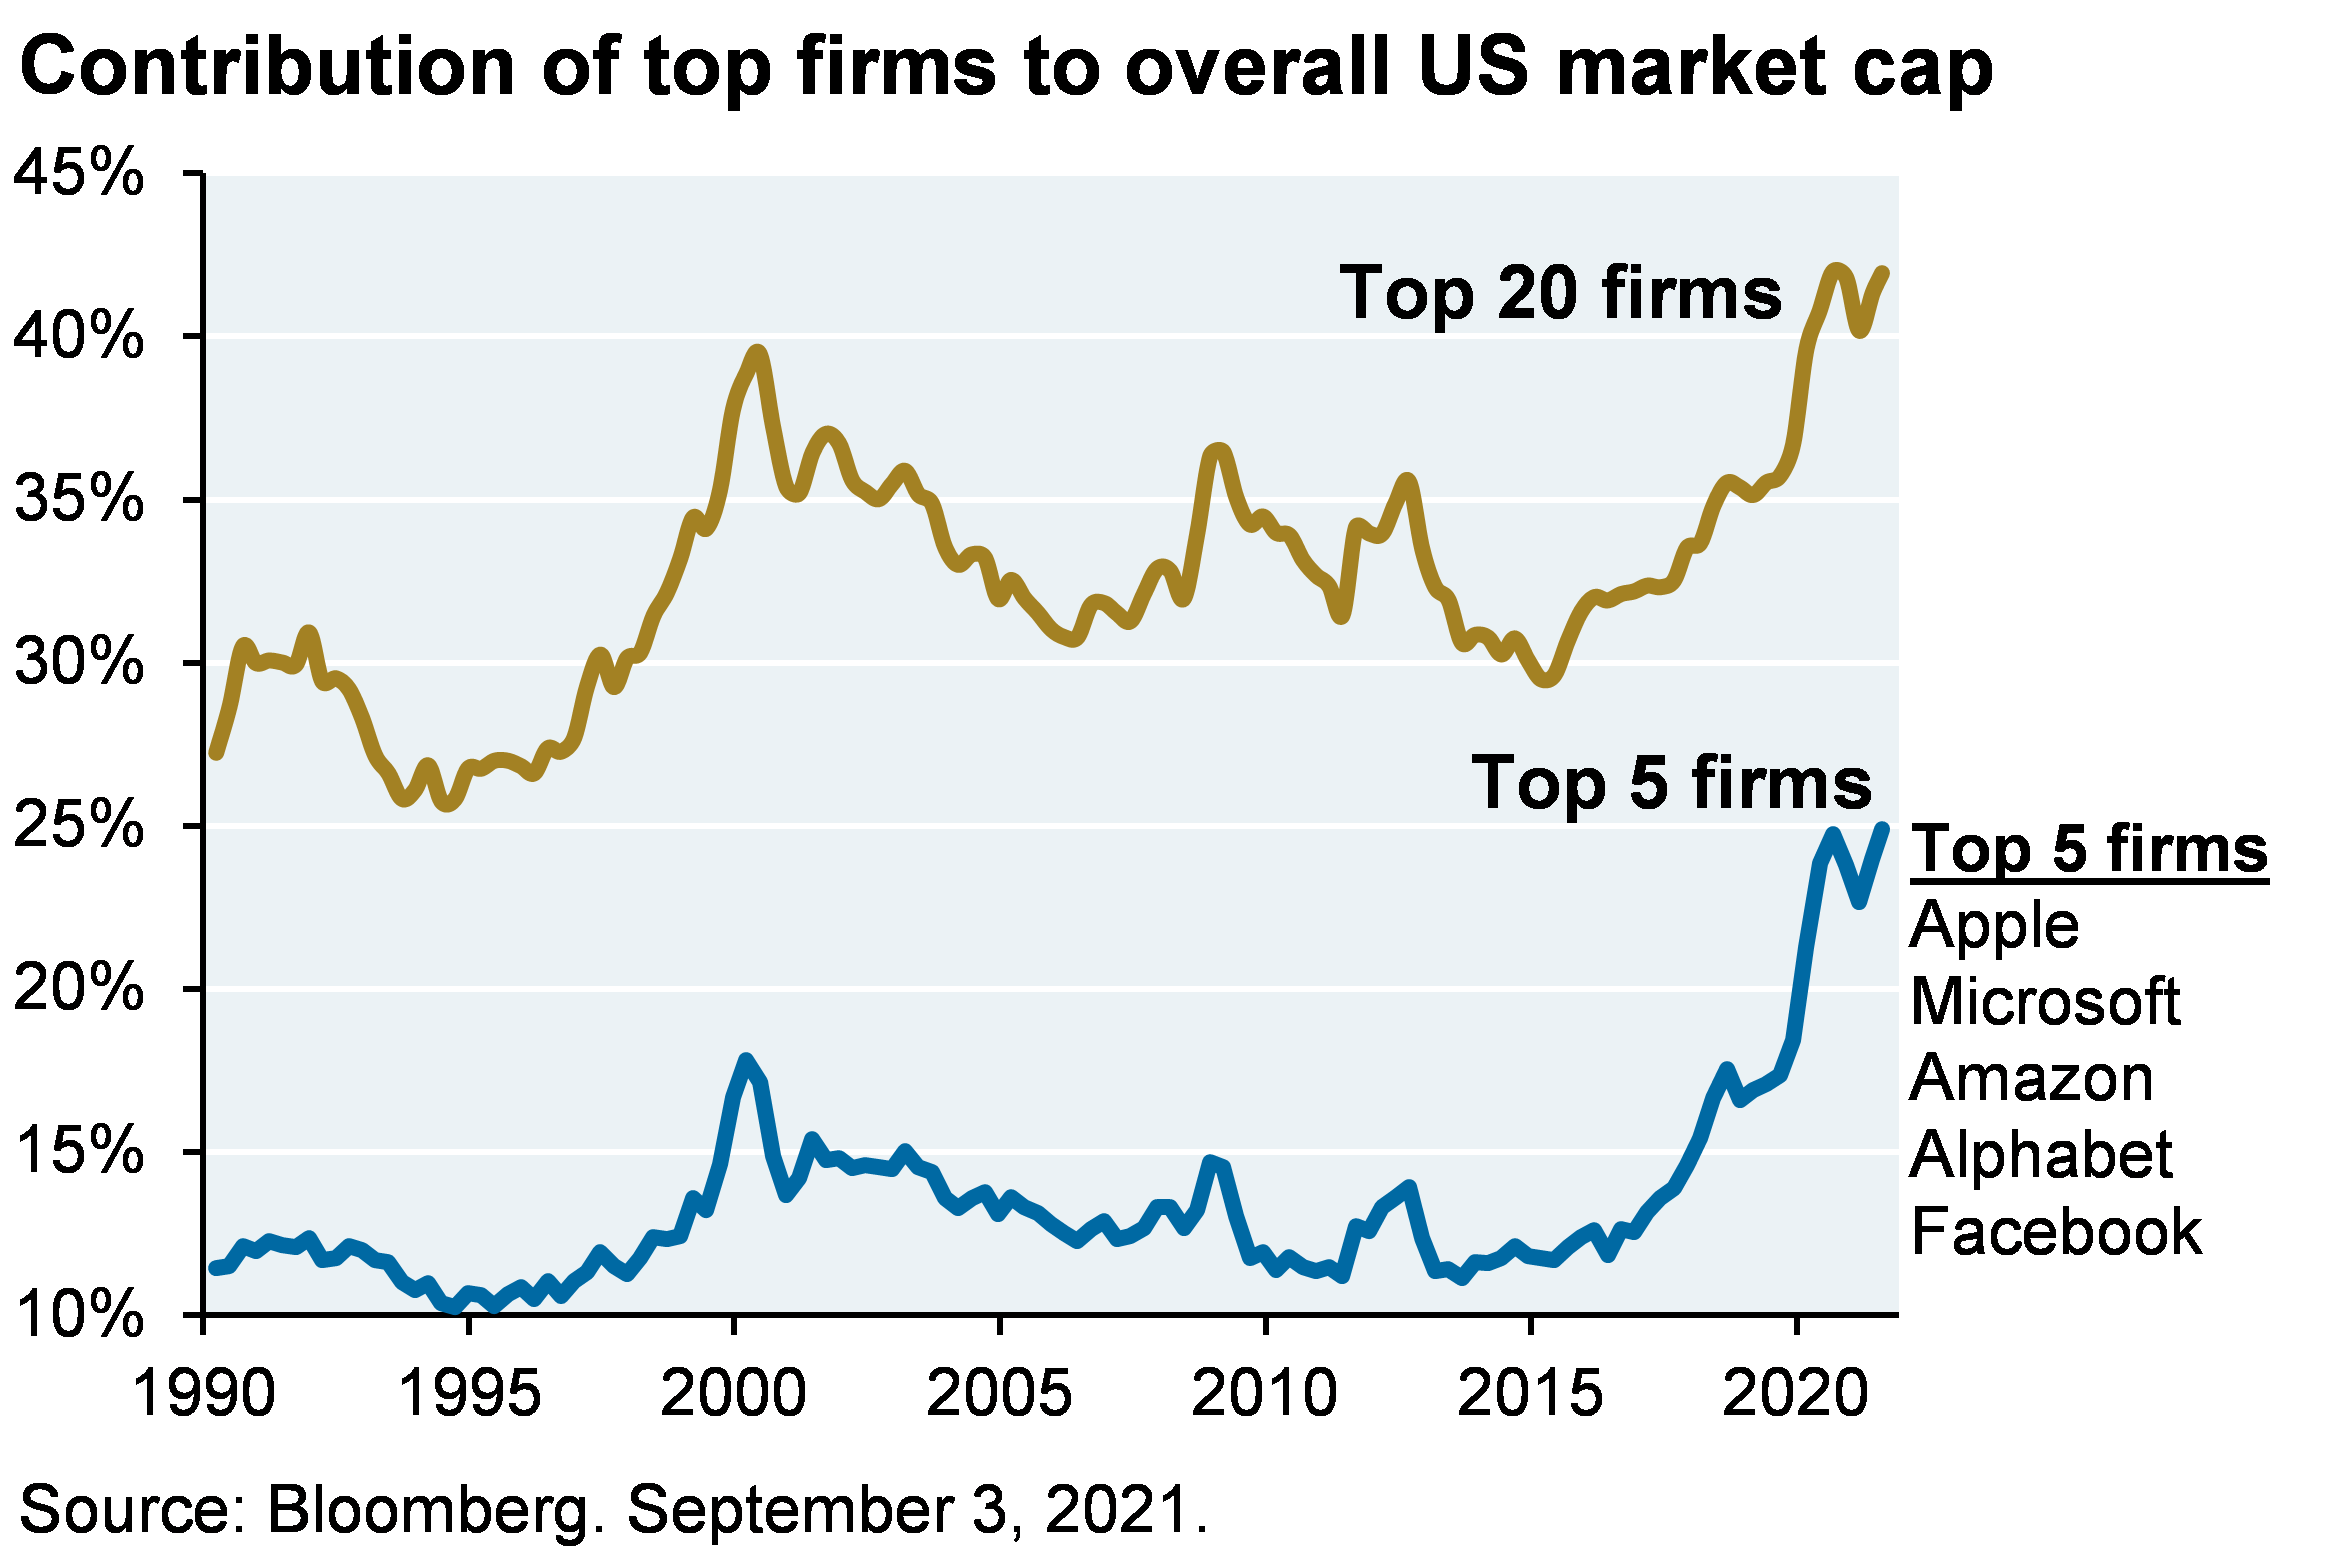 Line chart shows contribution of top firms to overall US market cap. Chart shows that the top 20 firms contribution to overall US market cap has increased from just over 25% in 1990 to a current level of over 40%. The top 5 firms (Apple, Microsoft, Amazon, Alphabet, Facebook) have grown from just over 10% of overall US market cap to 25% as of August 2021.